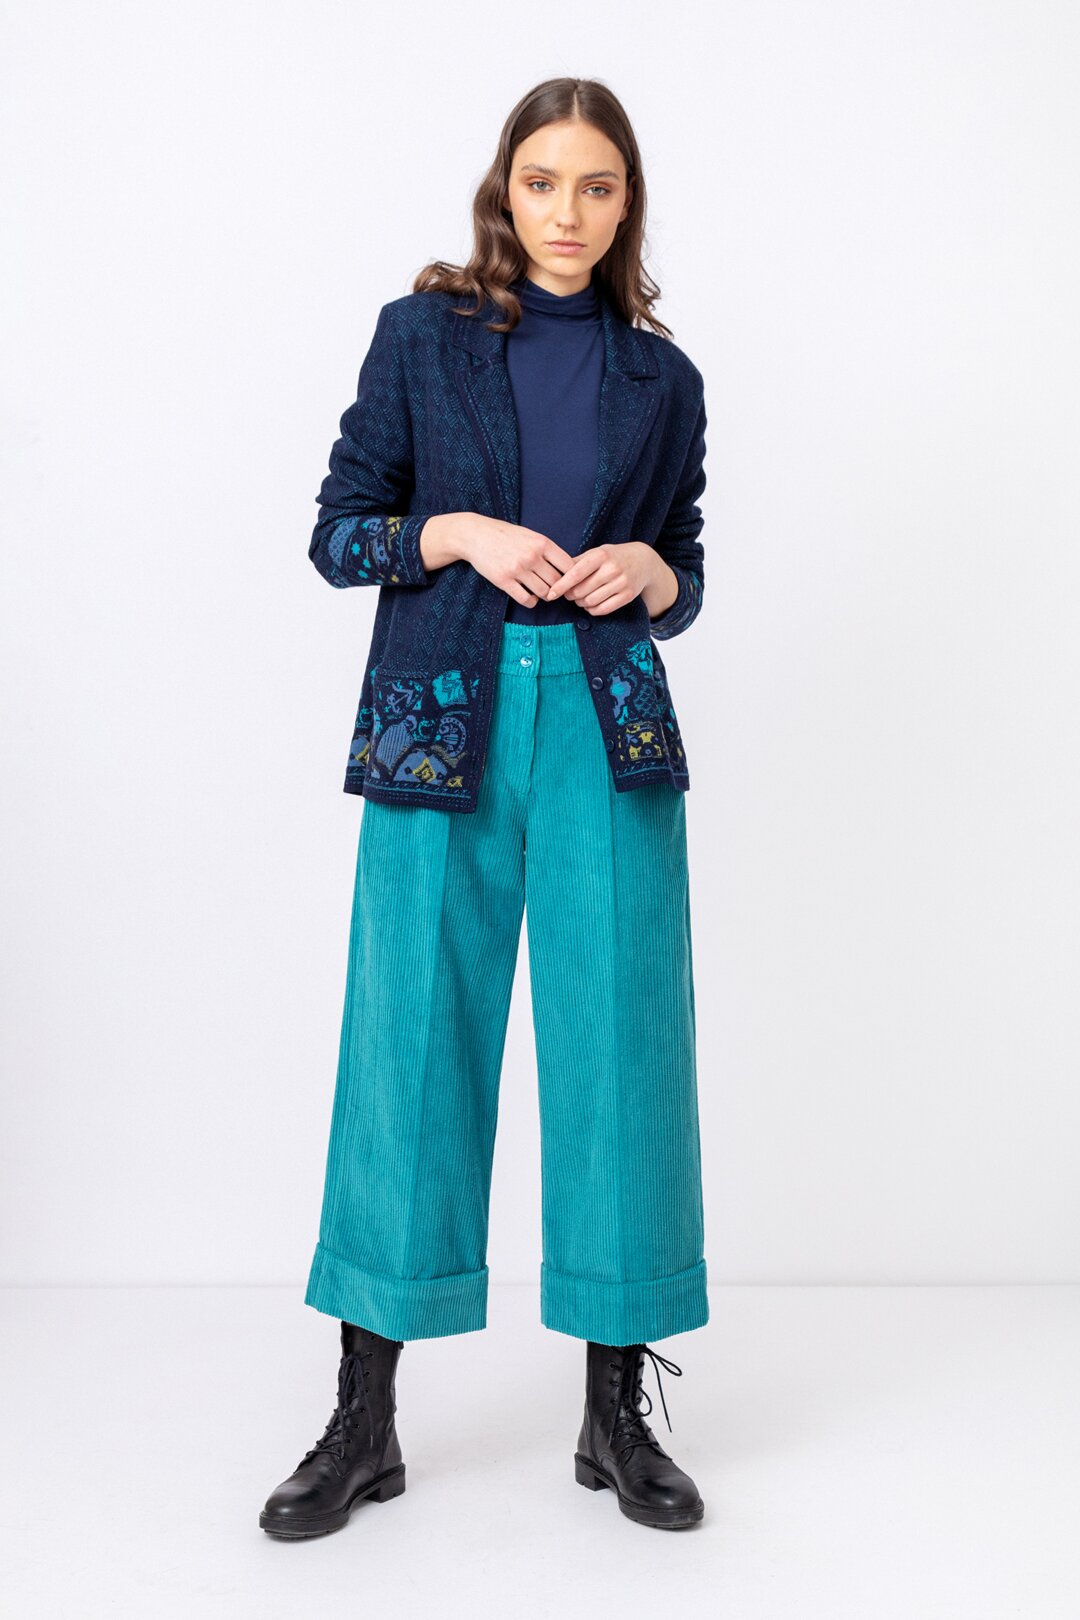 outfit-7c8a0949